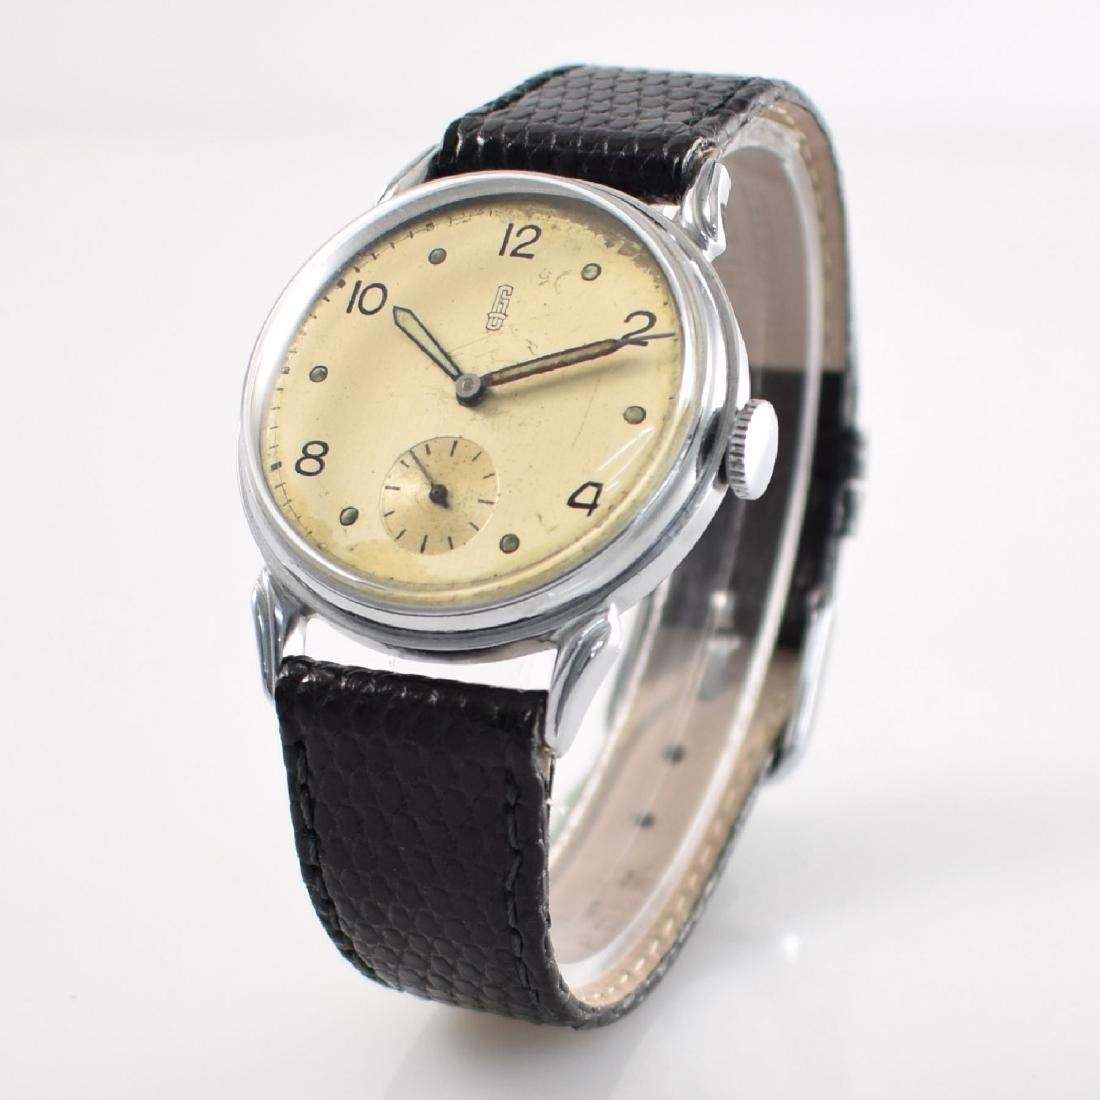 GLASHUTTE rare early gents wristwatch calibre 61 - 4